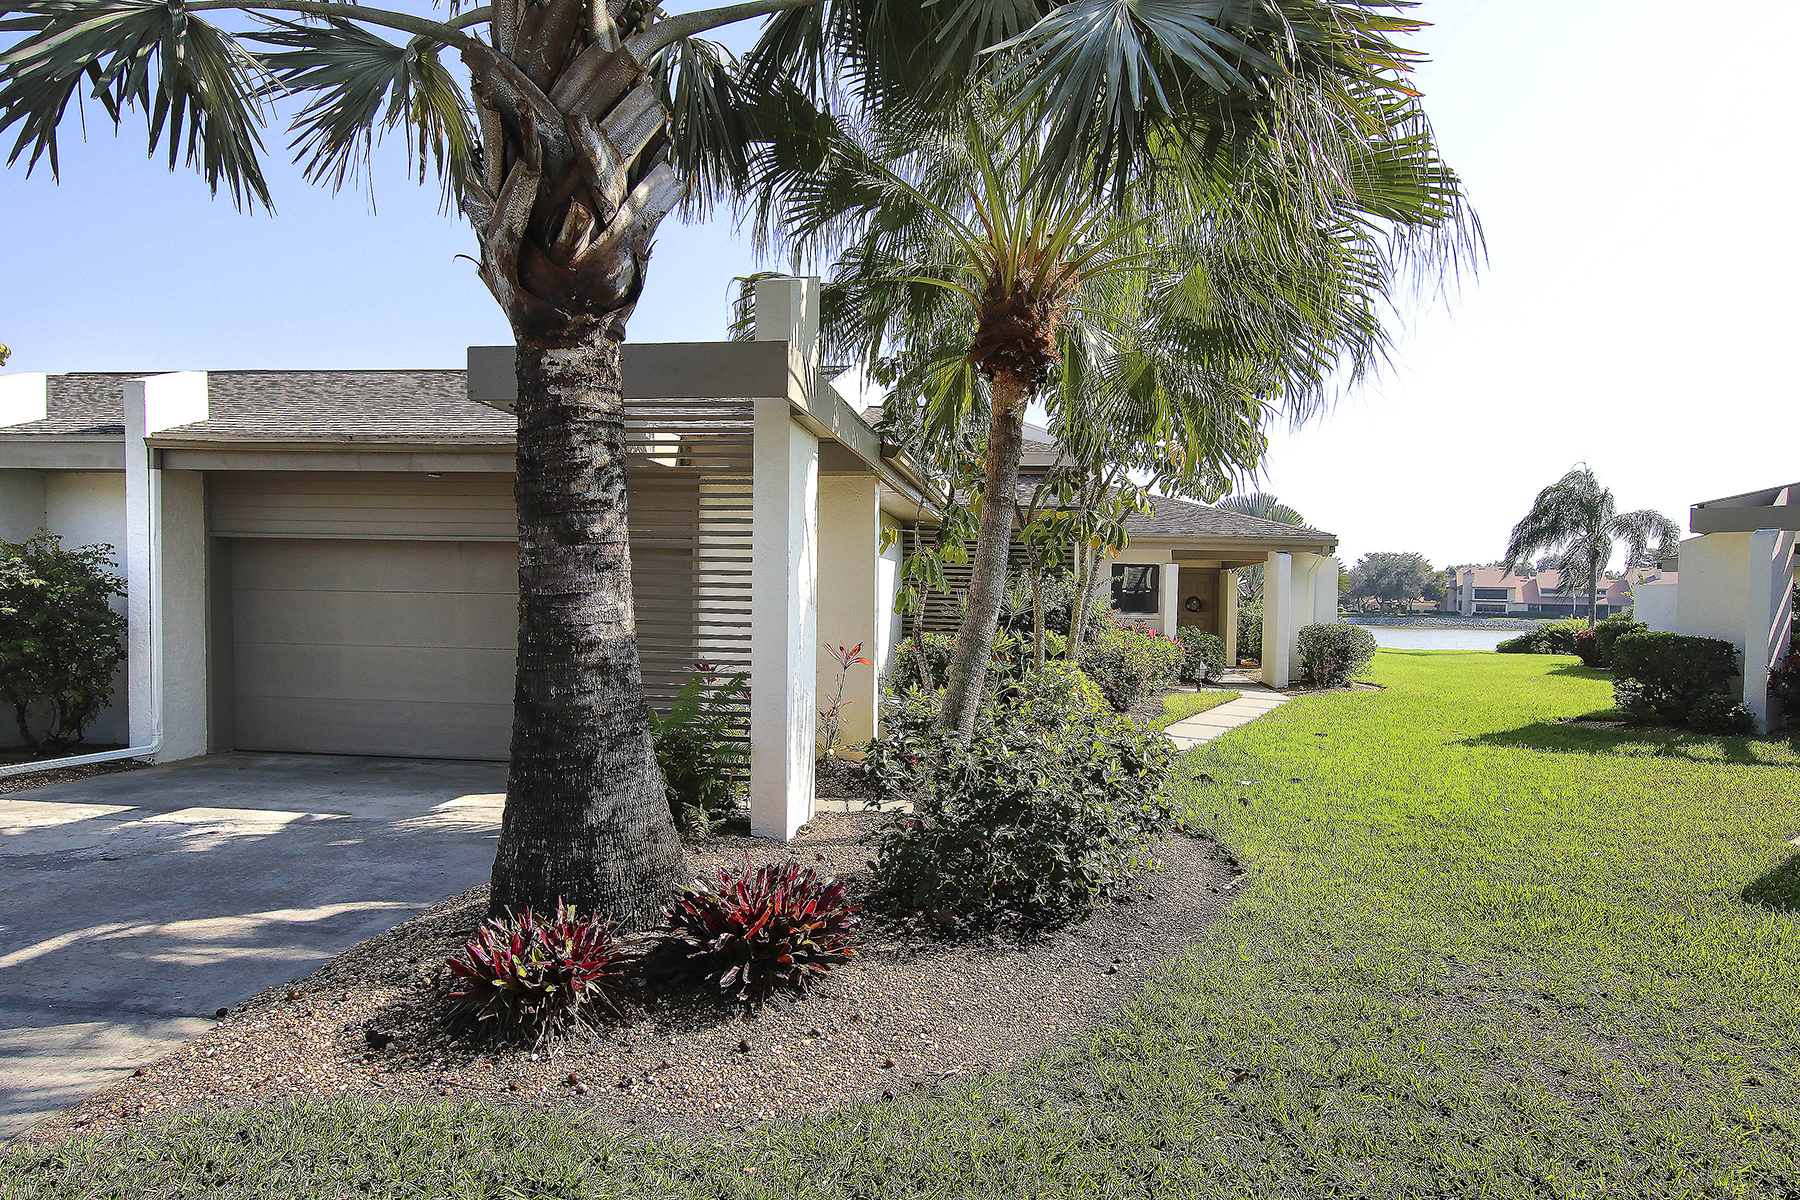 Single Family Home for Sale at THE FOREST - EAGLES LANDING 16588 Timberlakes Dr 1 Fort Myers, Florida, 33908 United States